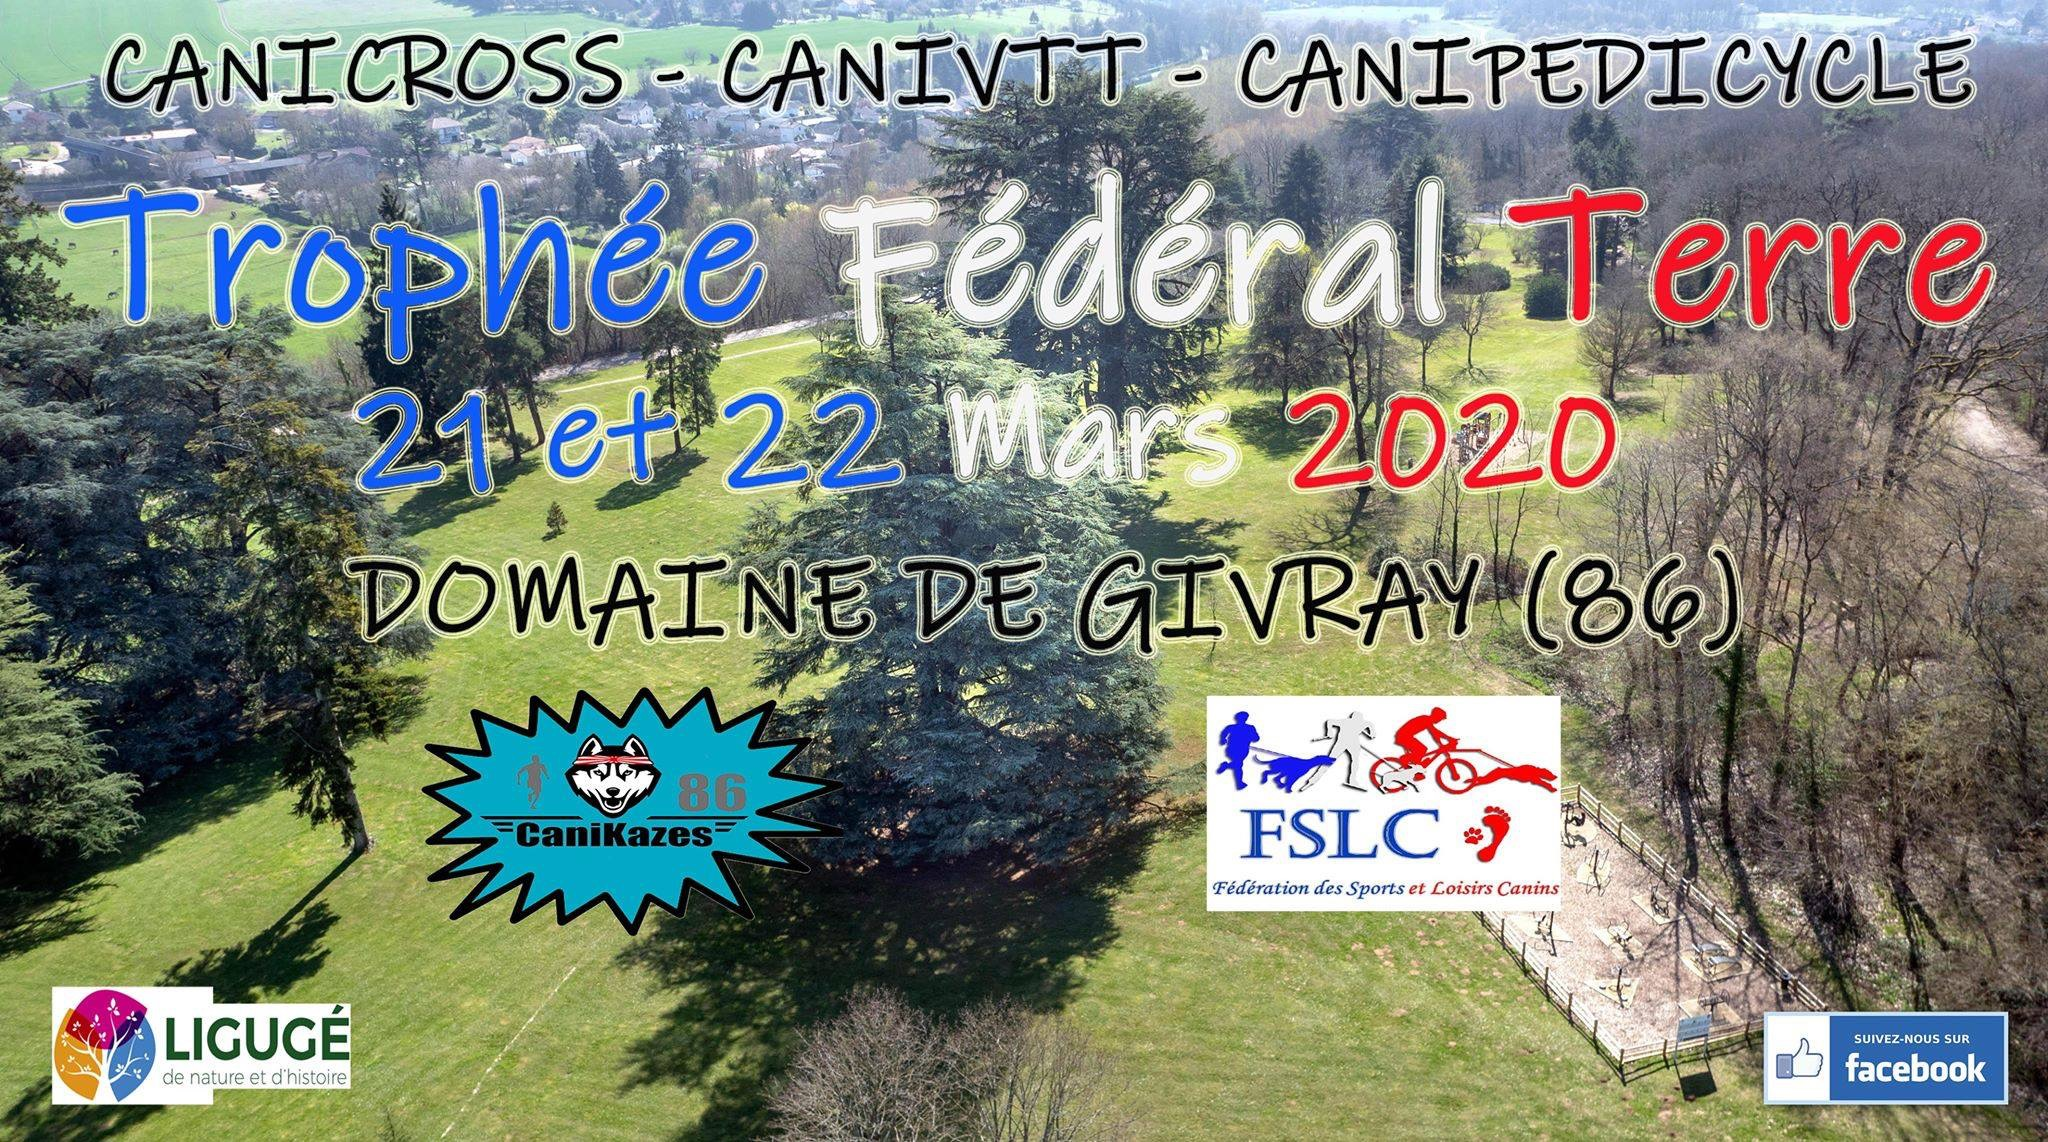 Calendrier Canicross.Accueil Federation Des Sports Et Loisirs Canins